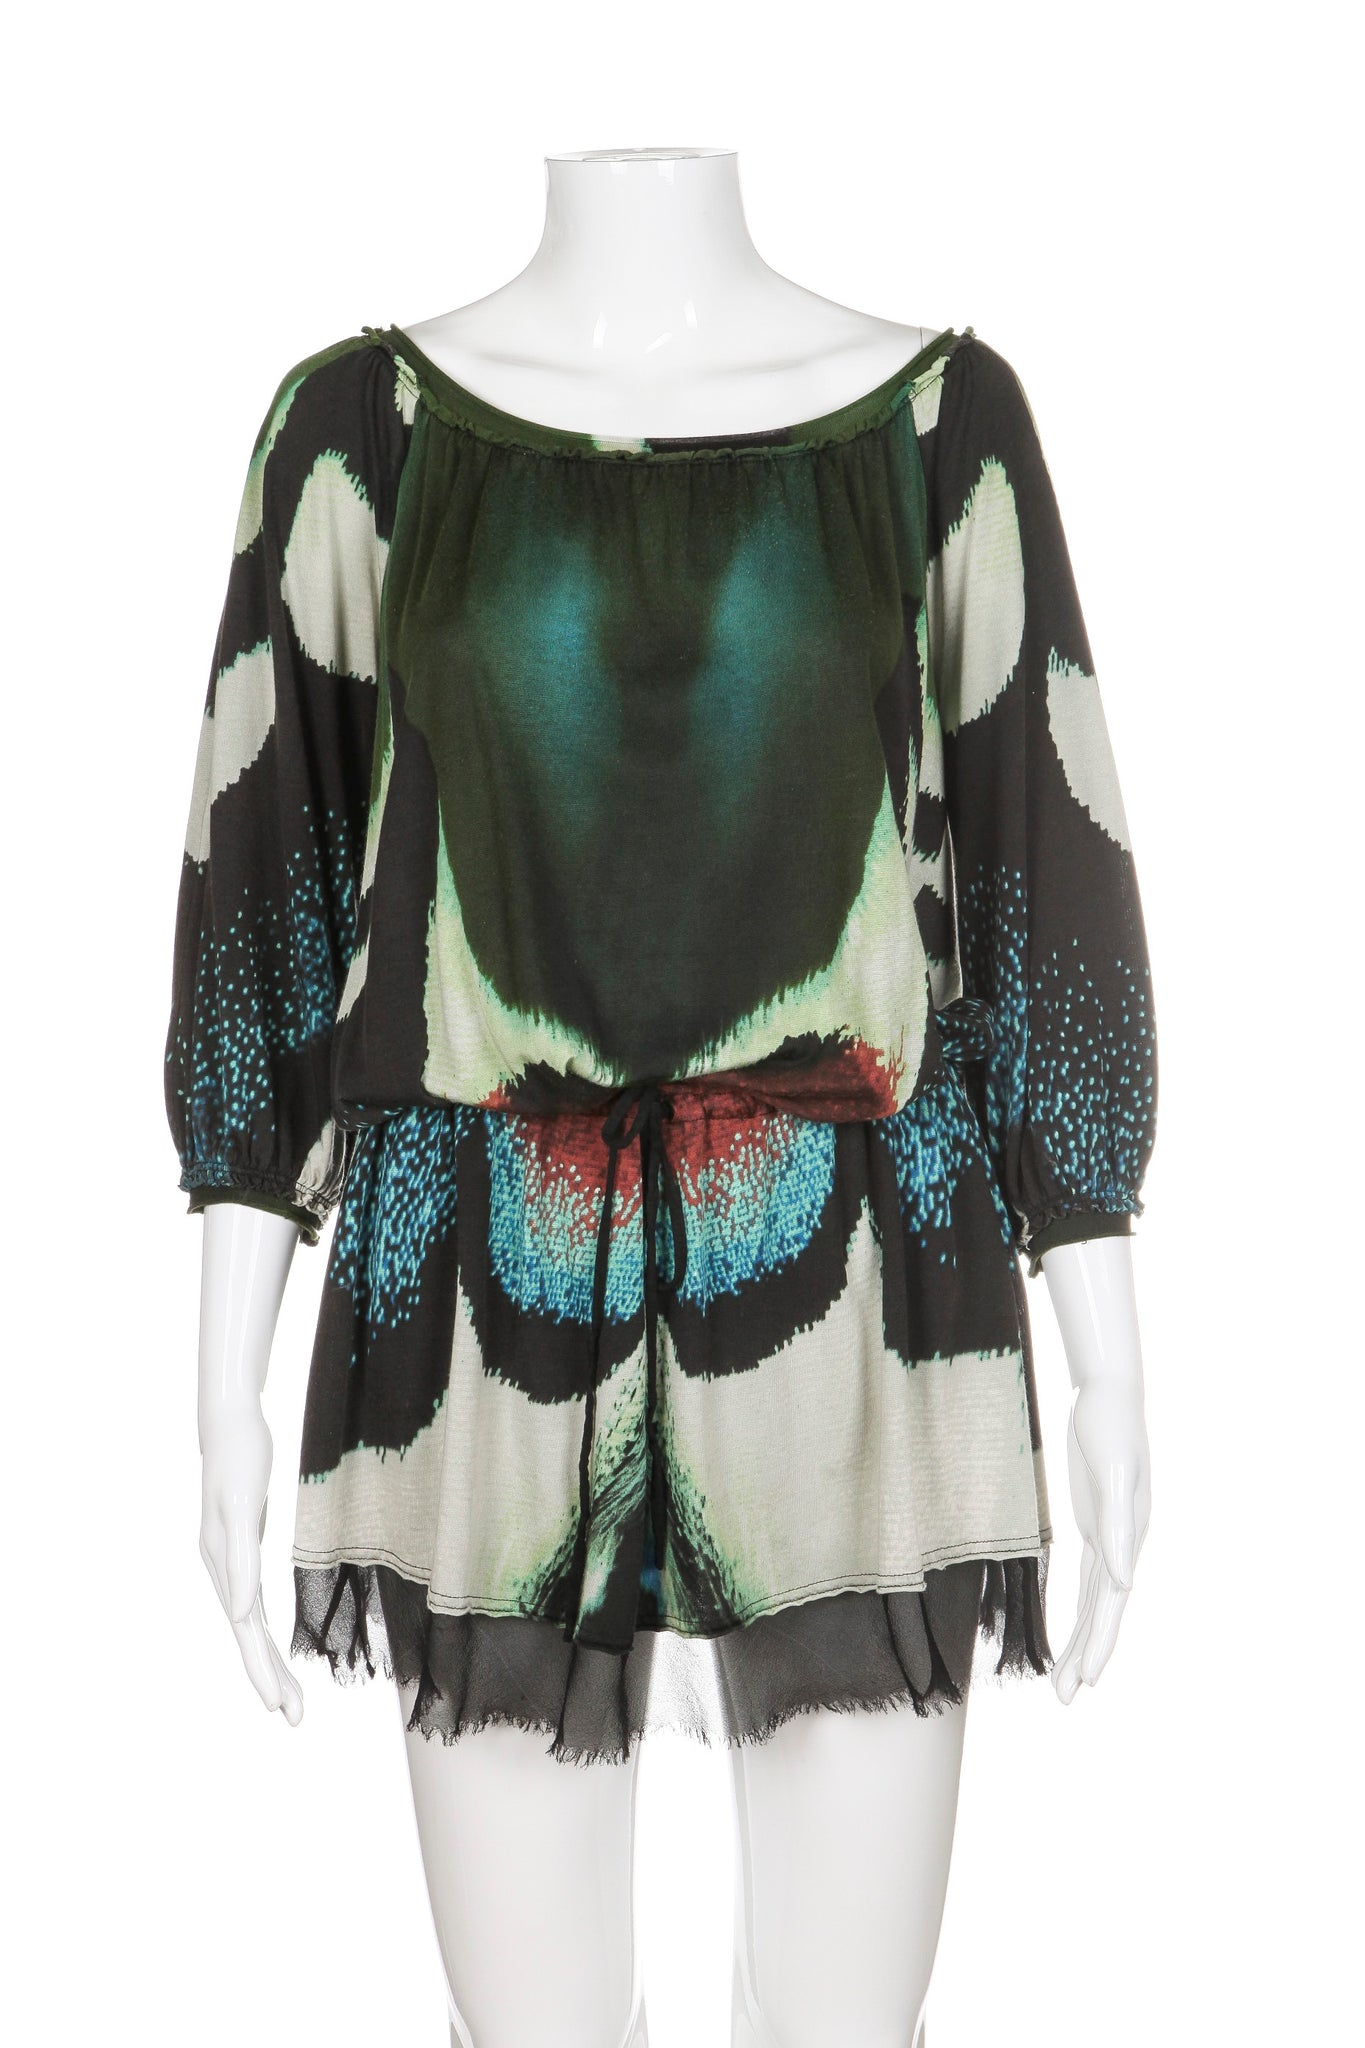 VIVIENNE TAM Dress Silk Blend Green Print Size P